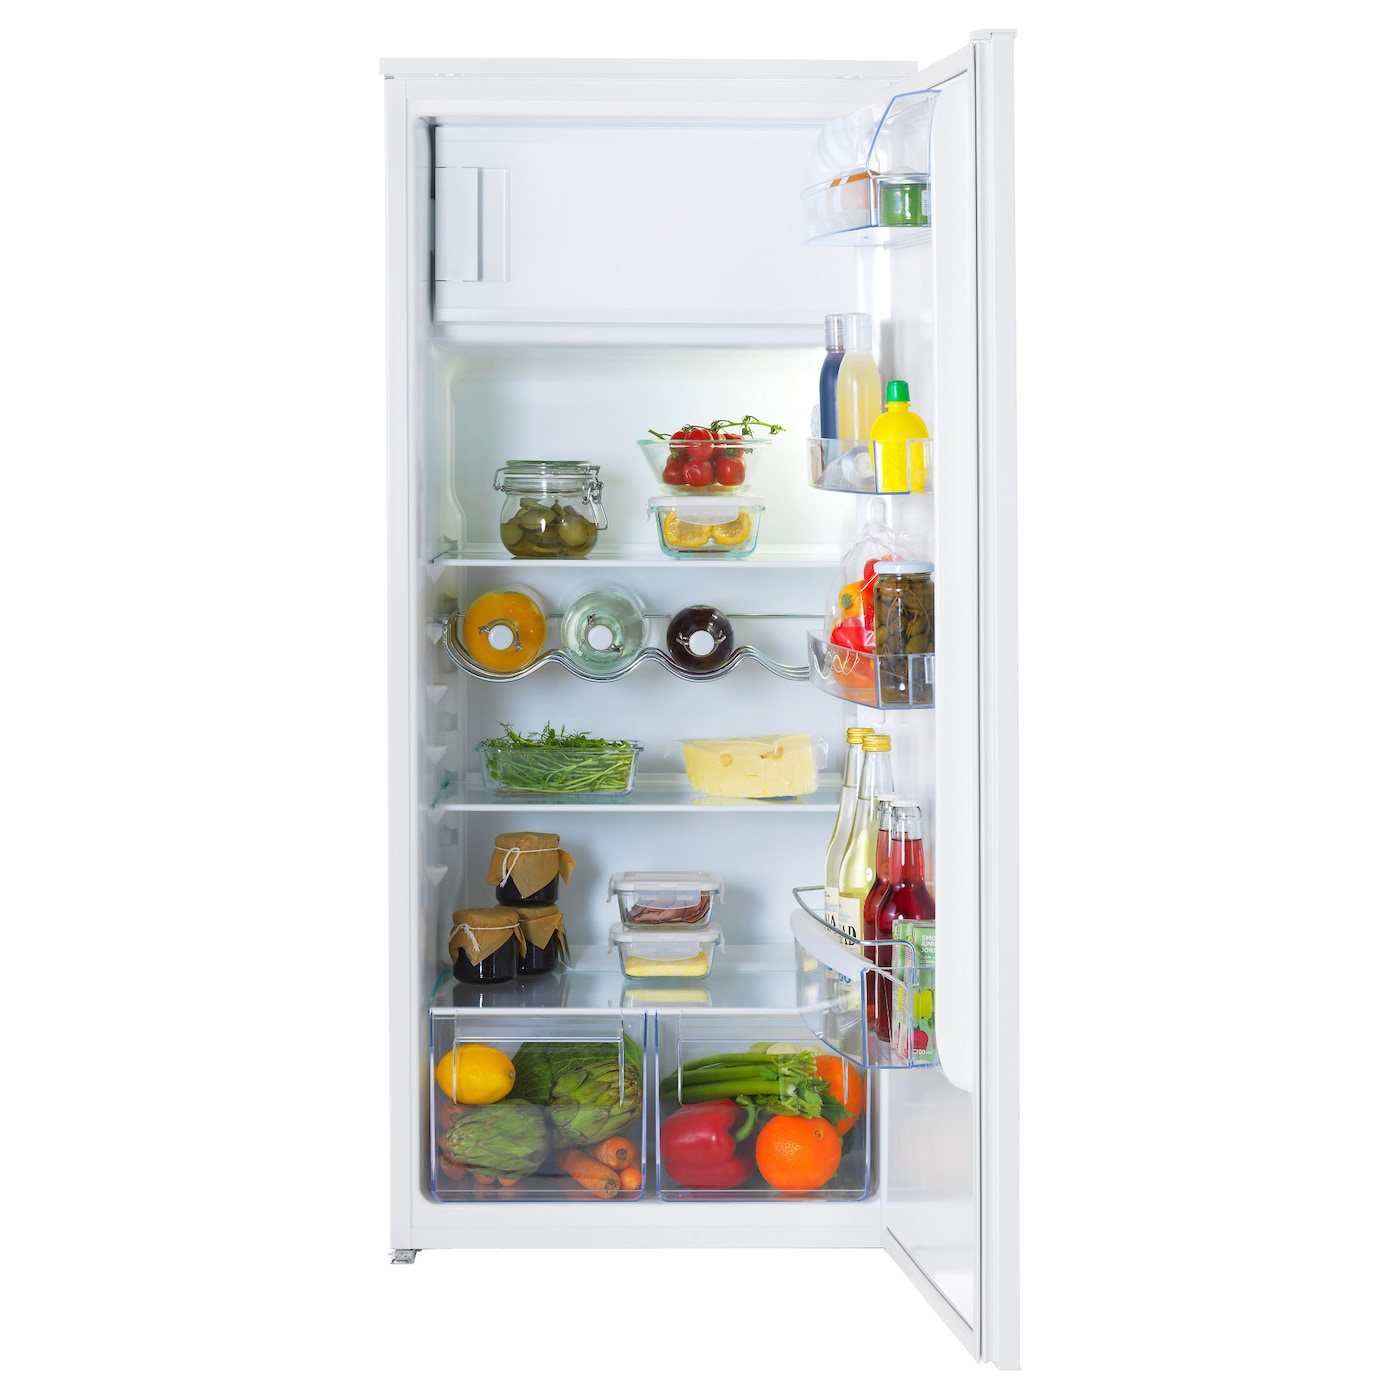 Fridges, Freezers & Fridge Freezers - IKEA